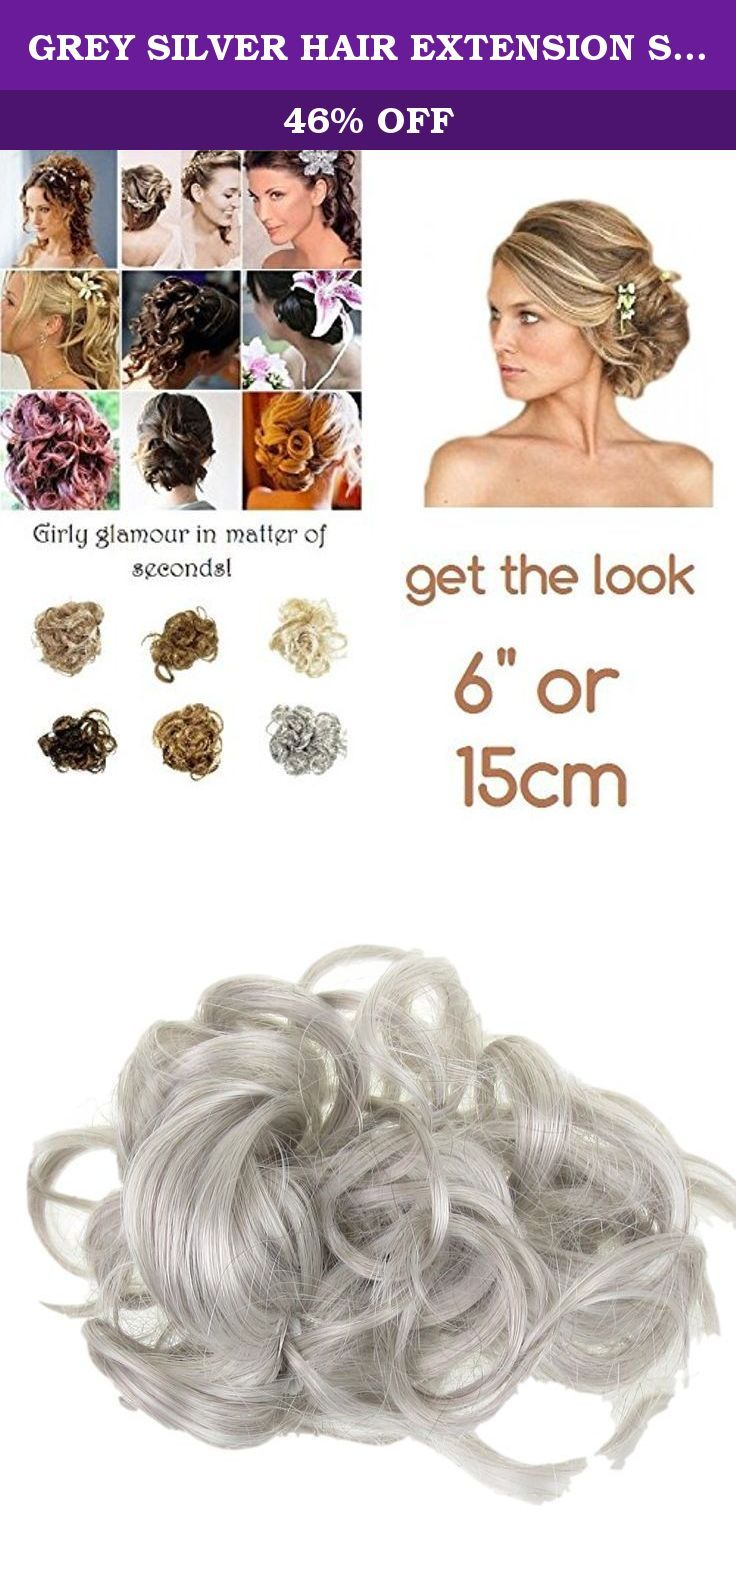 GREY SILVER HAIR EXTENSION SCRUNCHIE UPDO DOWN DO TOPPER 0N ELASTIC WHIRLY FUN C24. Instant Girly Curly Style! A simple, little, luxurious, body creating, scrunchie. Twist on elastic so that you can vary the shape, anyone can manage the Bardot famous look. Never have a bad hair day again. Try this Multi Use curly Twister! Twister is a fabulous product you can create an updo or large bun in seconds! Wear two for an even higher curly messy look. Wear as an up do twisted round a high pony…